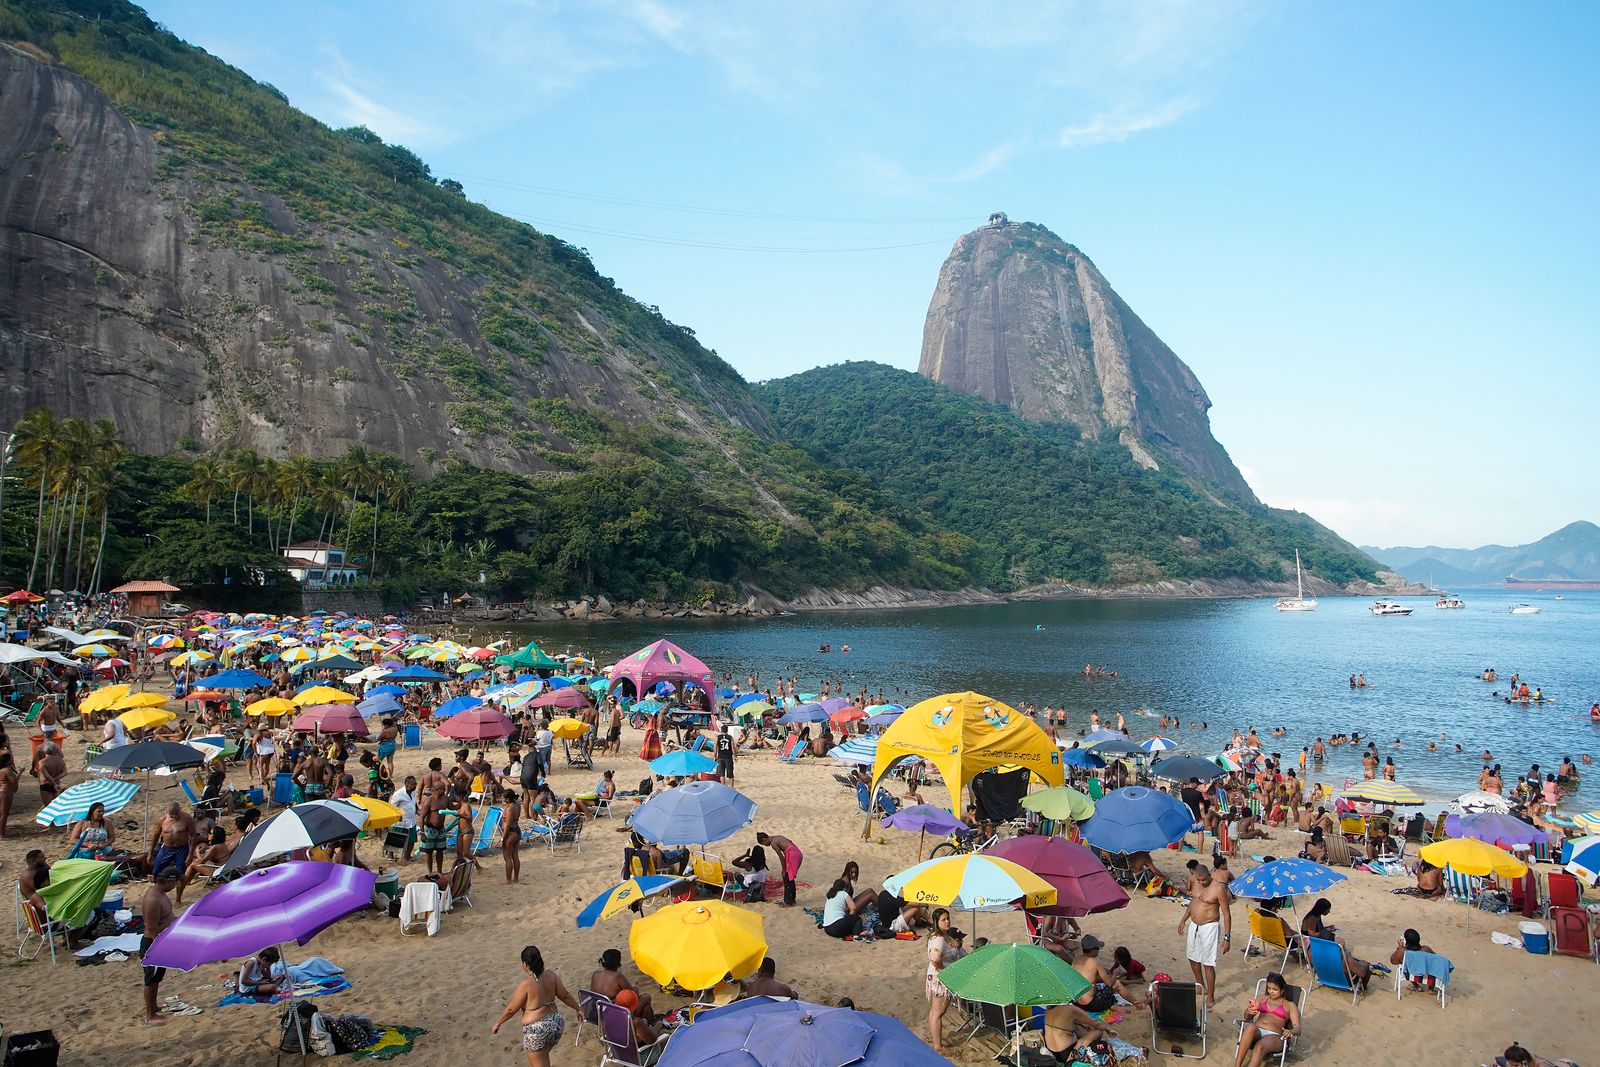 People Agglomerate on Fat Tuesday in Rio de Janeiro Despite the Prohibition due to the Coronavirus (COVID-19) Pandemic